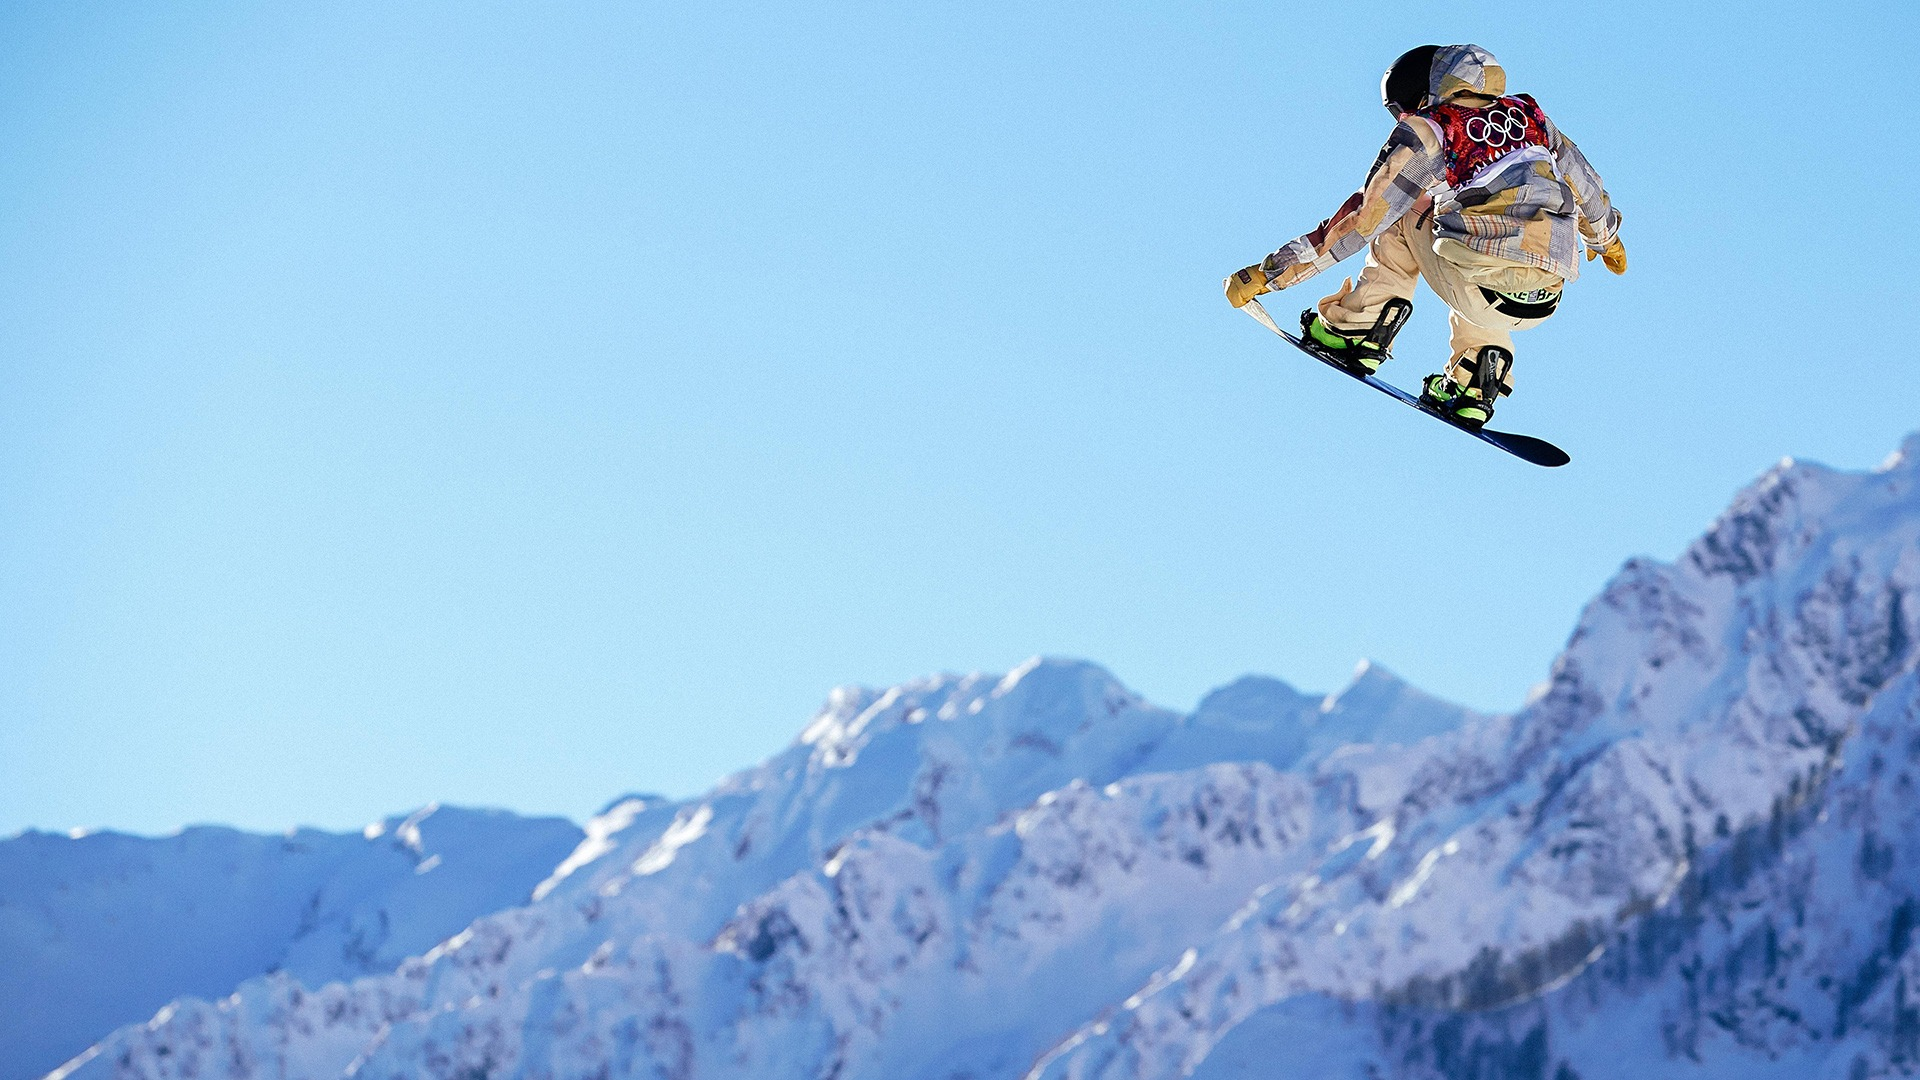 Sage Kotsenburg soars high in the air with mountains in the distance